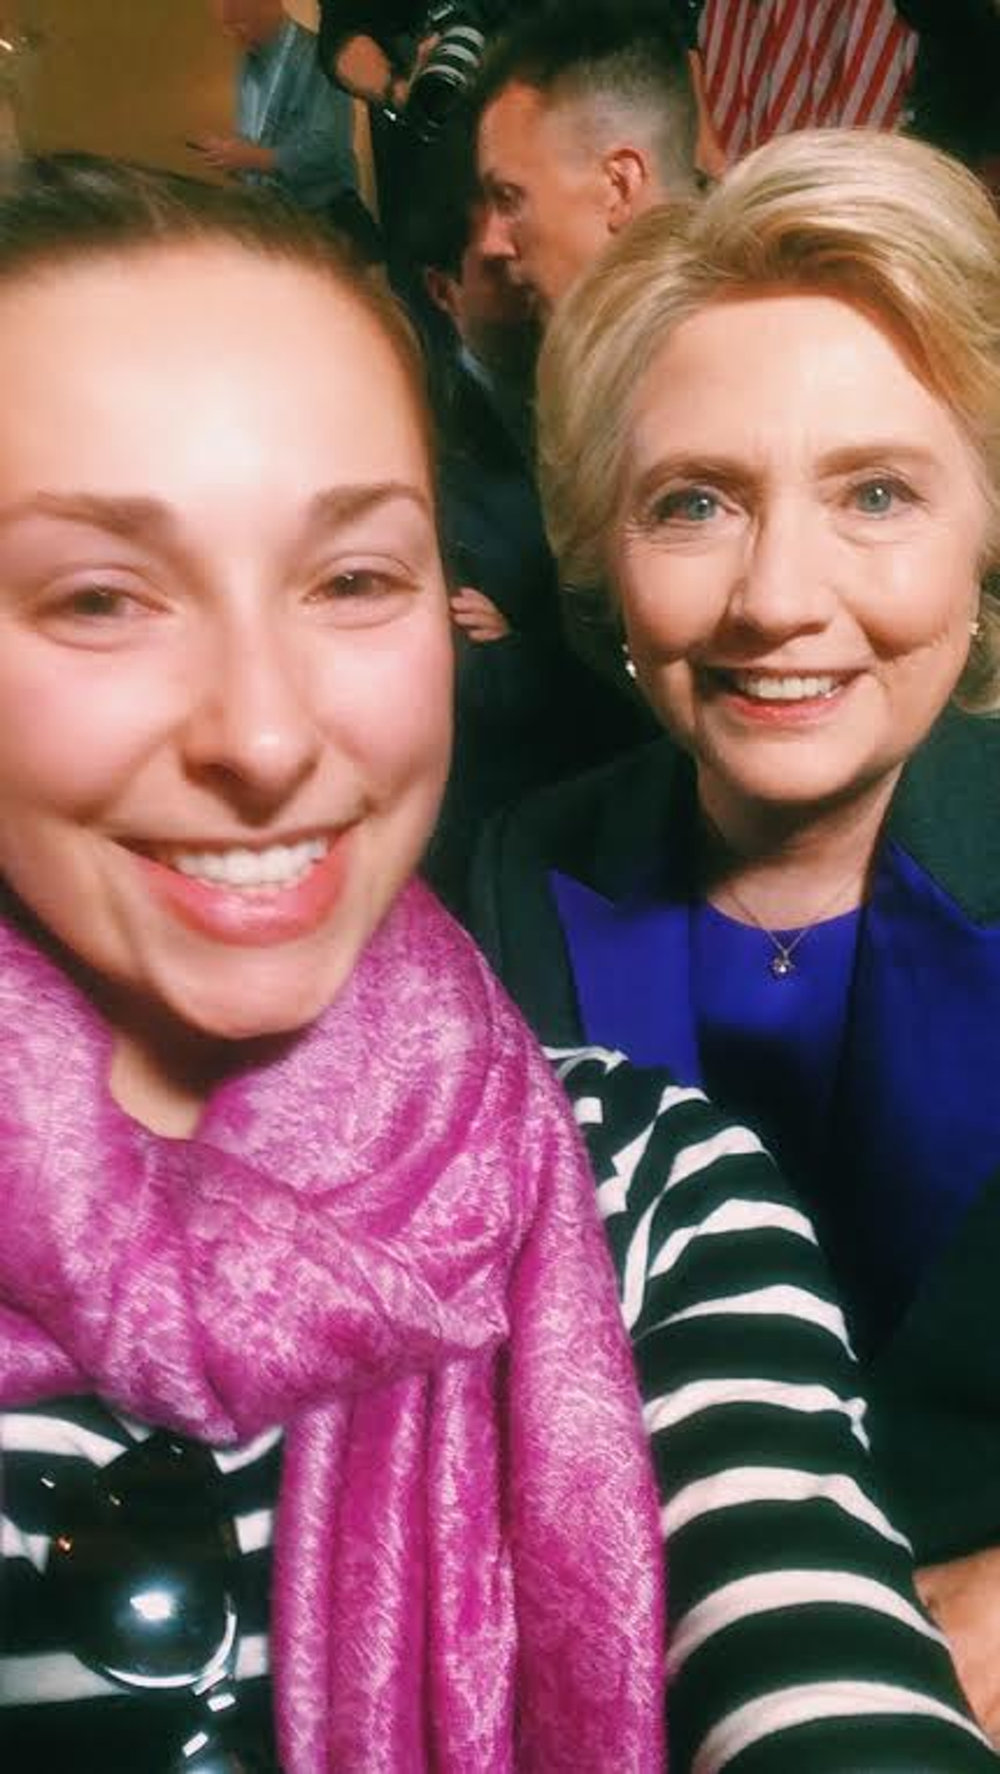 The writer takes a selfie with Hillary Clinton after her concession speech on Wednesday, Nov. 10, 2016. (Marissa Piccolo/The Daily Campus)